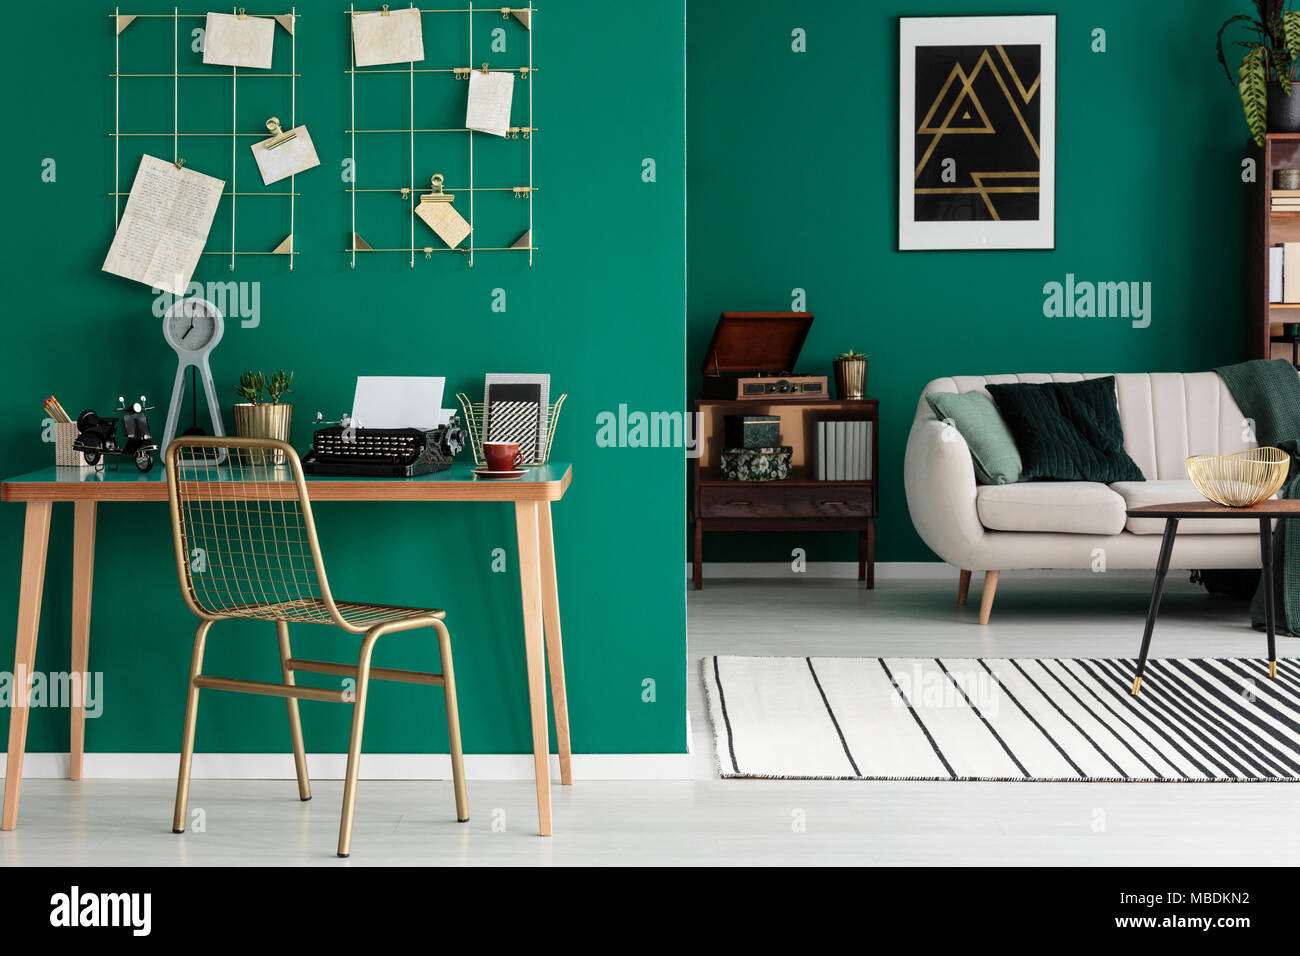 Gold, metal chair by a wooden desk with clock and typewriter in open space interior with carpet and bright sofa - Stock Image